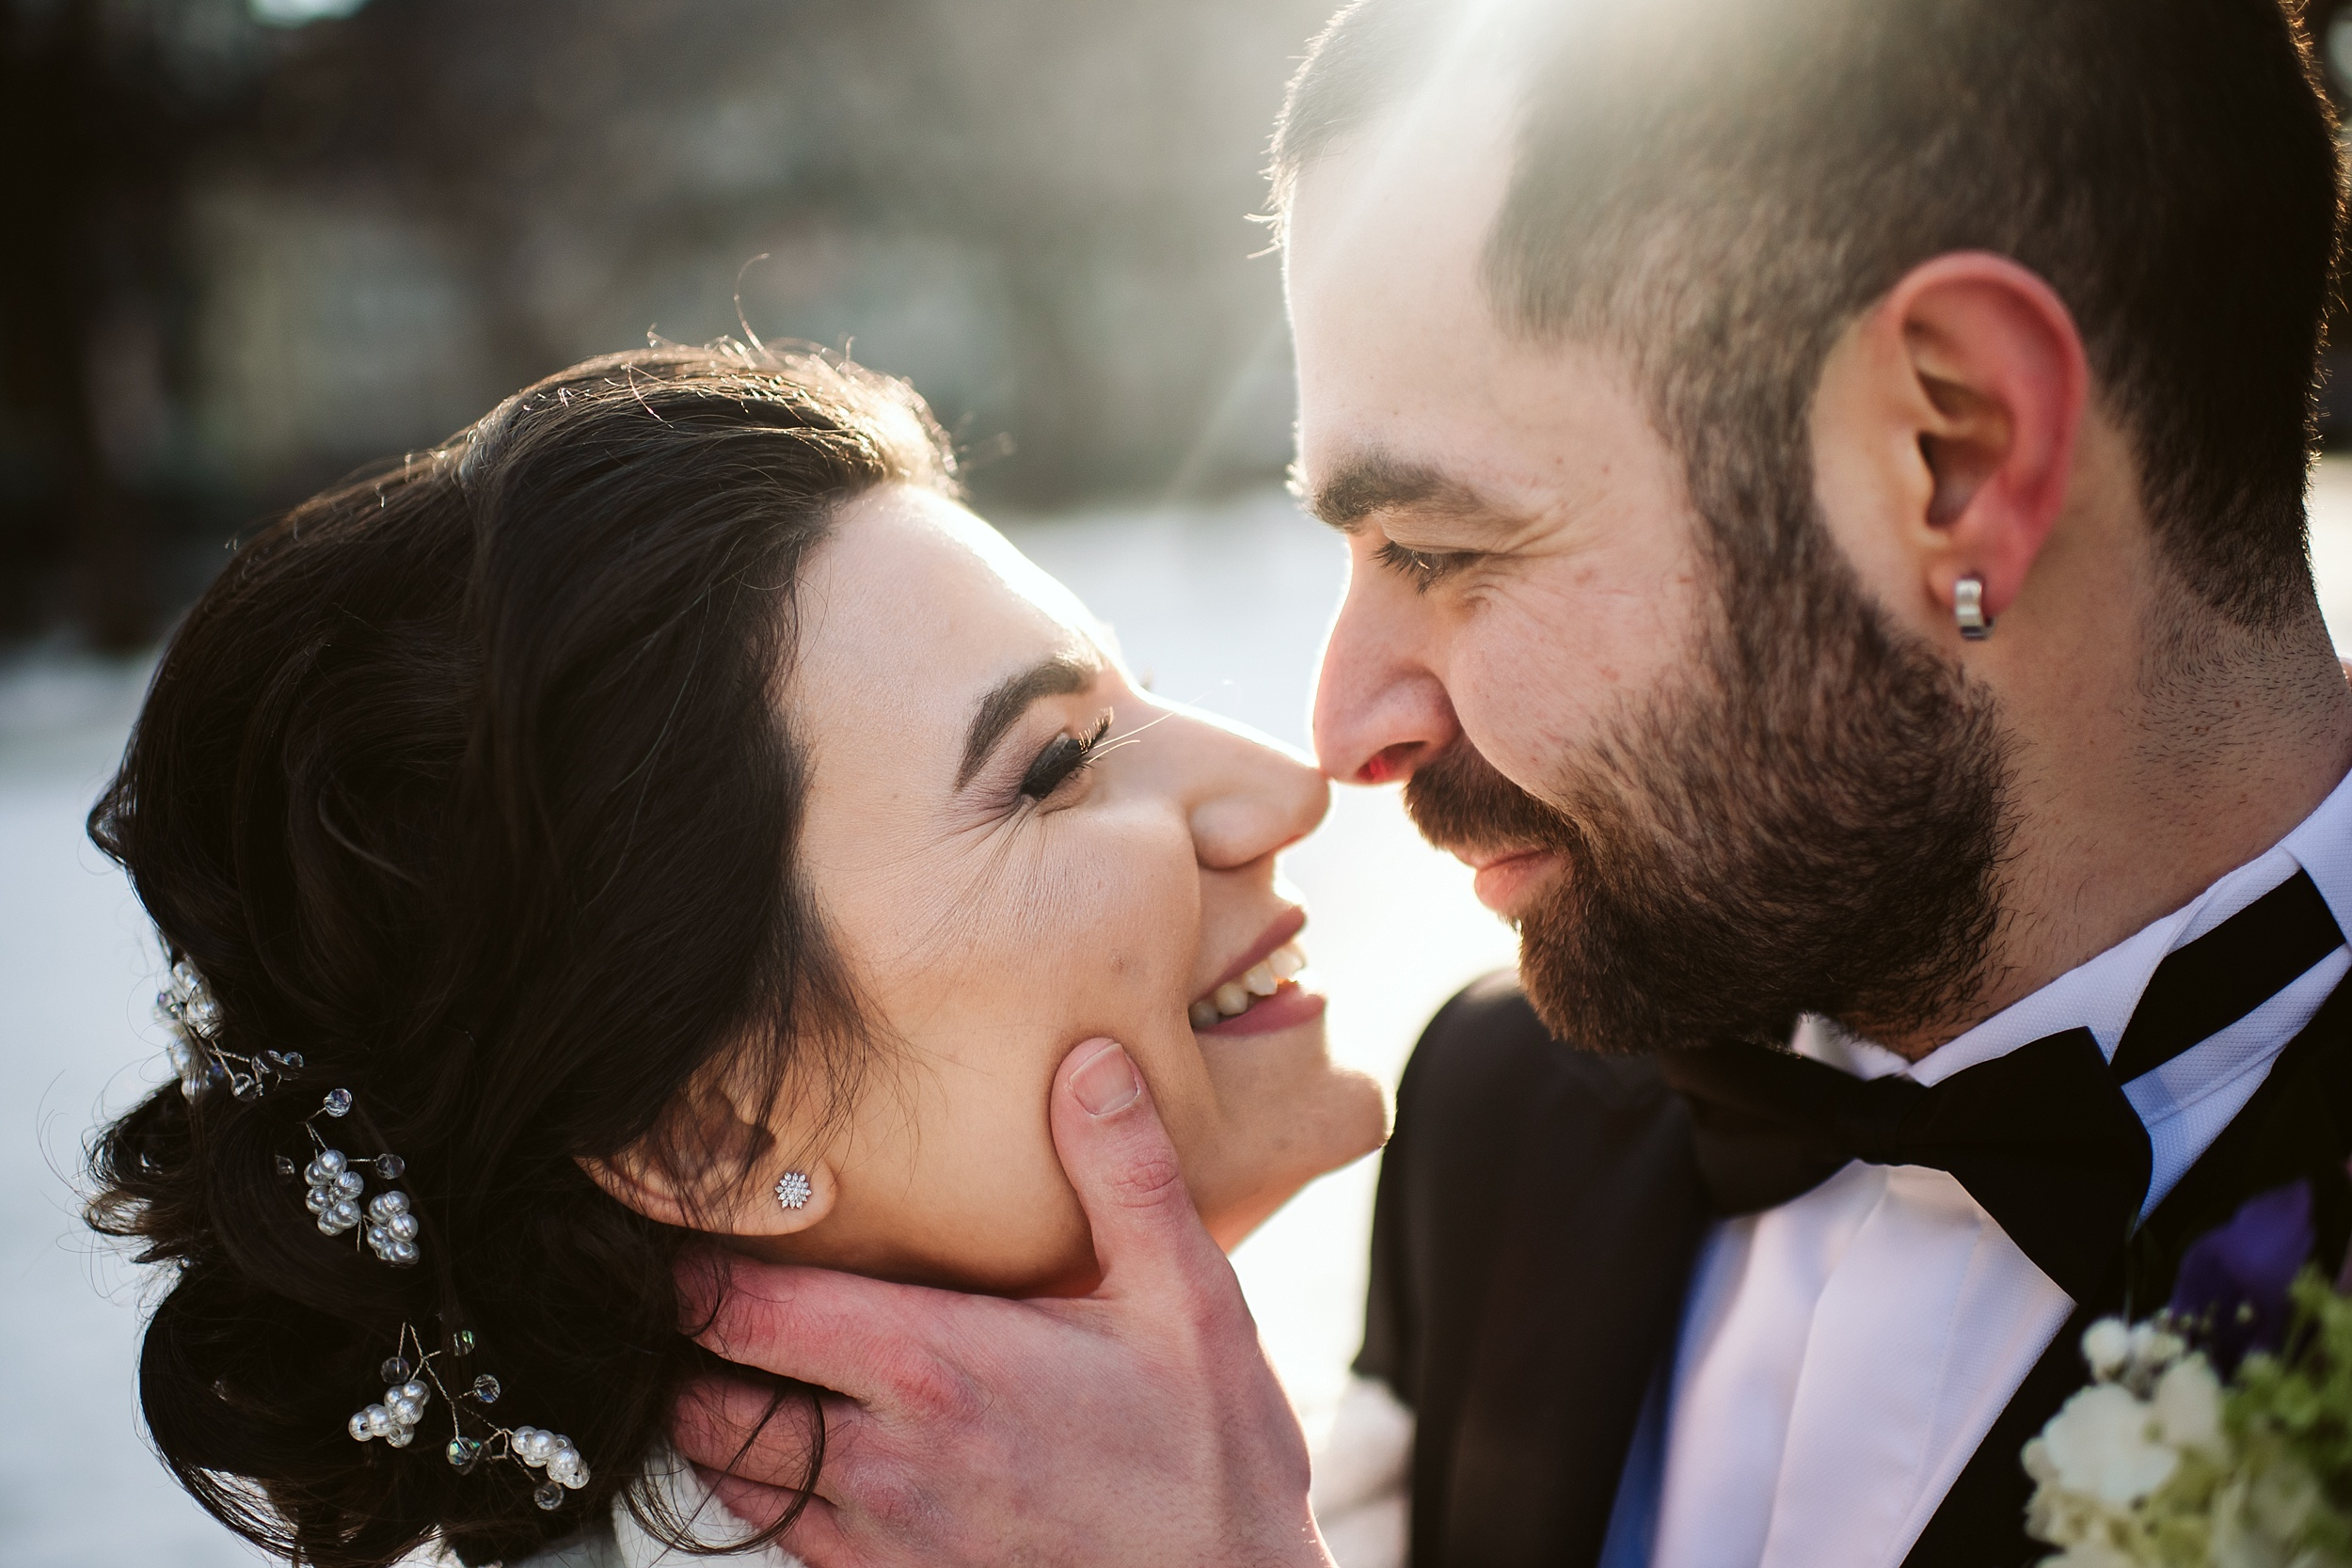 Toronto_City_Hall_Elopement_Wedding_Photographer009.jpg